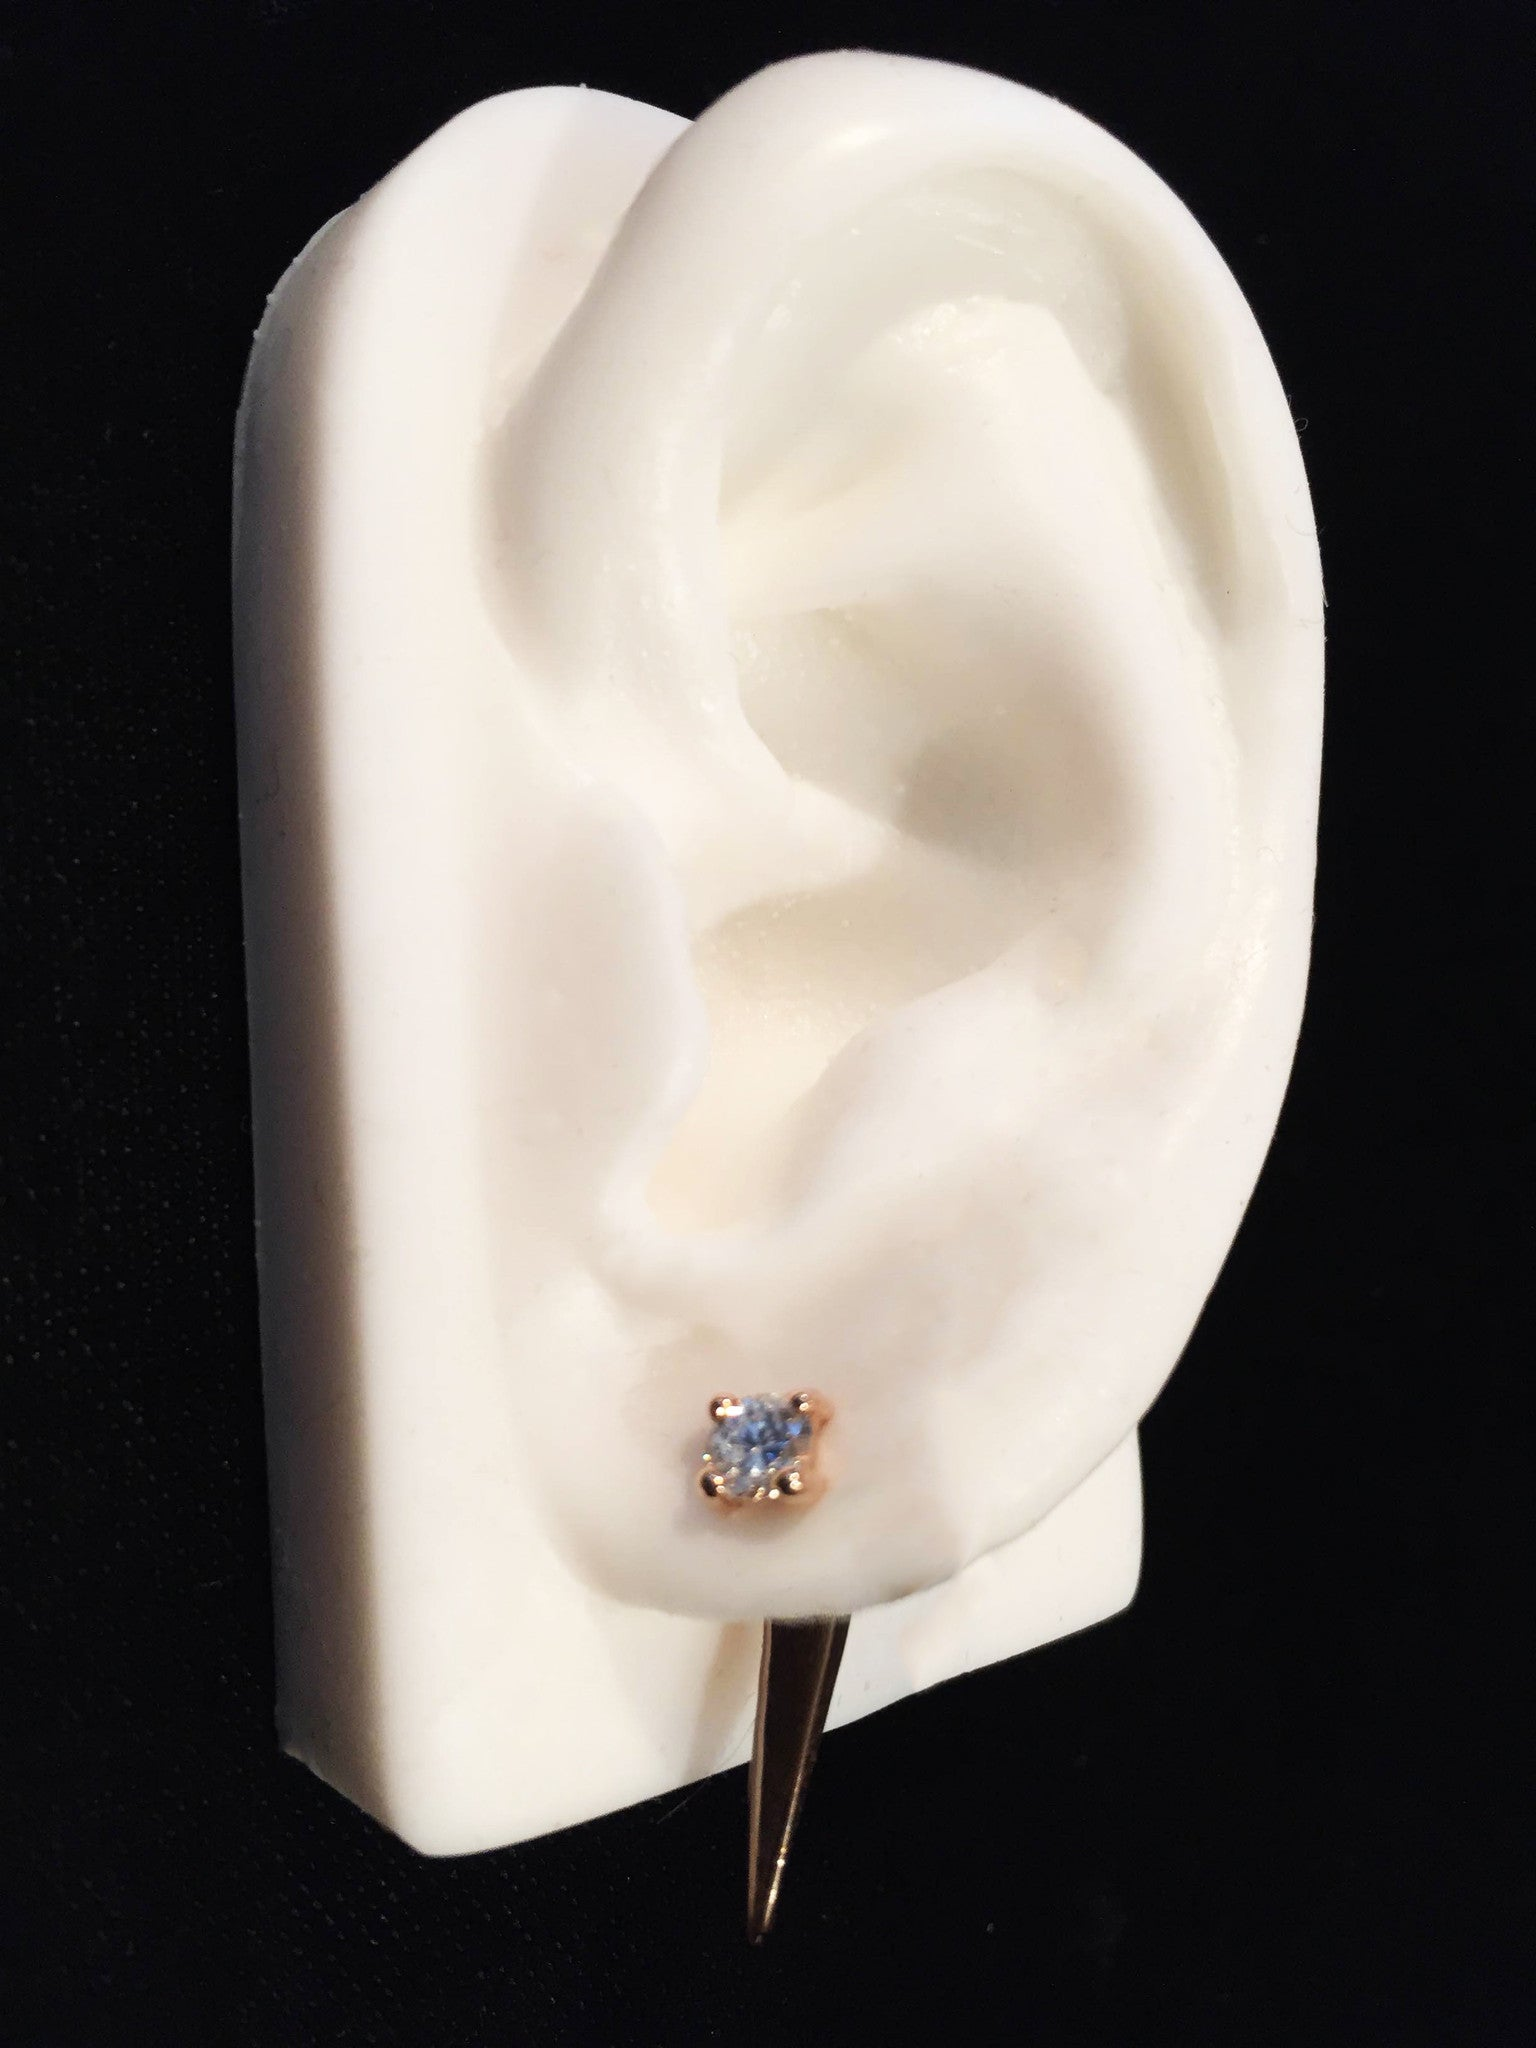 4mm White VS1 Clarity Diamond Wendy Nichol fine Jewelry Designer simple Studs 14k Gold Handmade in NYC